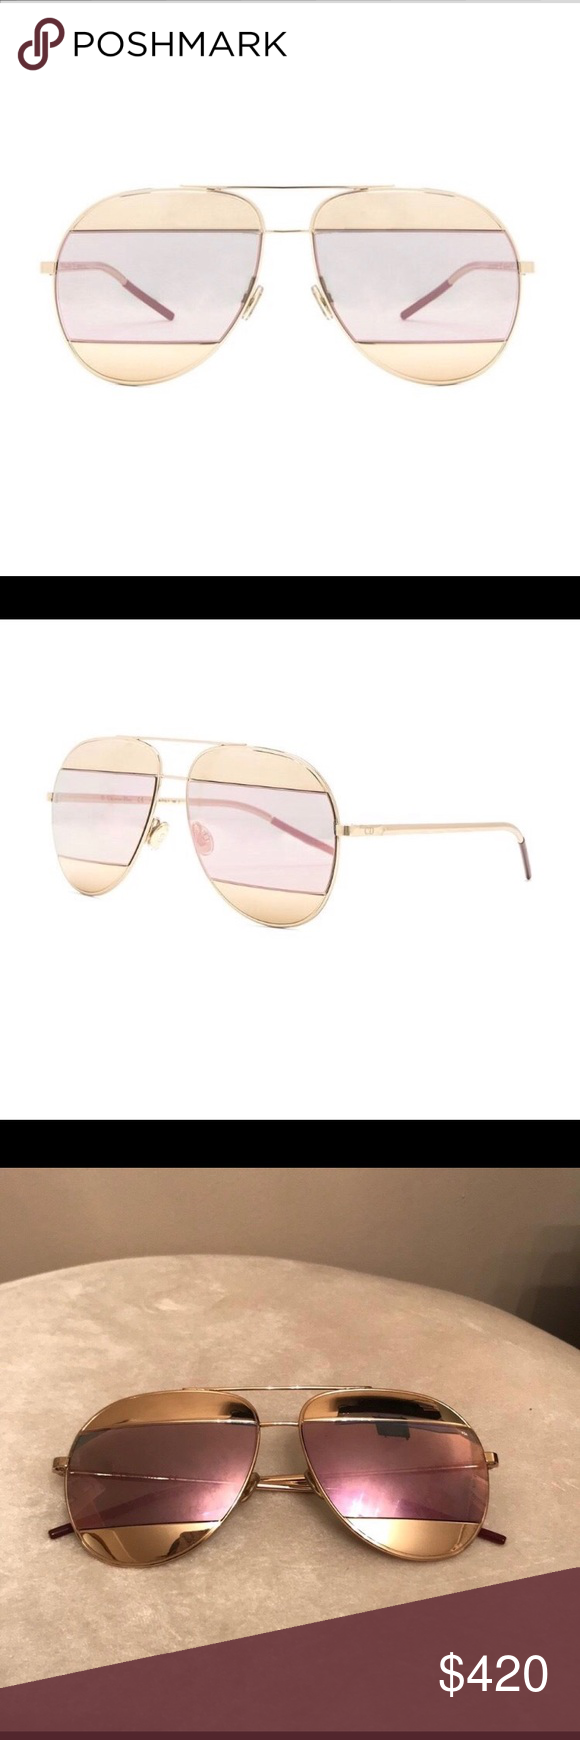 744558c92d9b Dior pink and gold sunglasses Pink and gold Dior split sunglasses in great  condition! Comes with original case. Dior Accessories Sunglasses